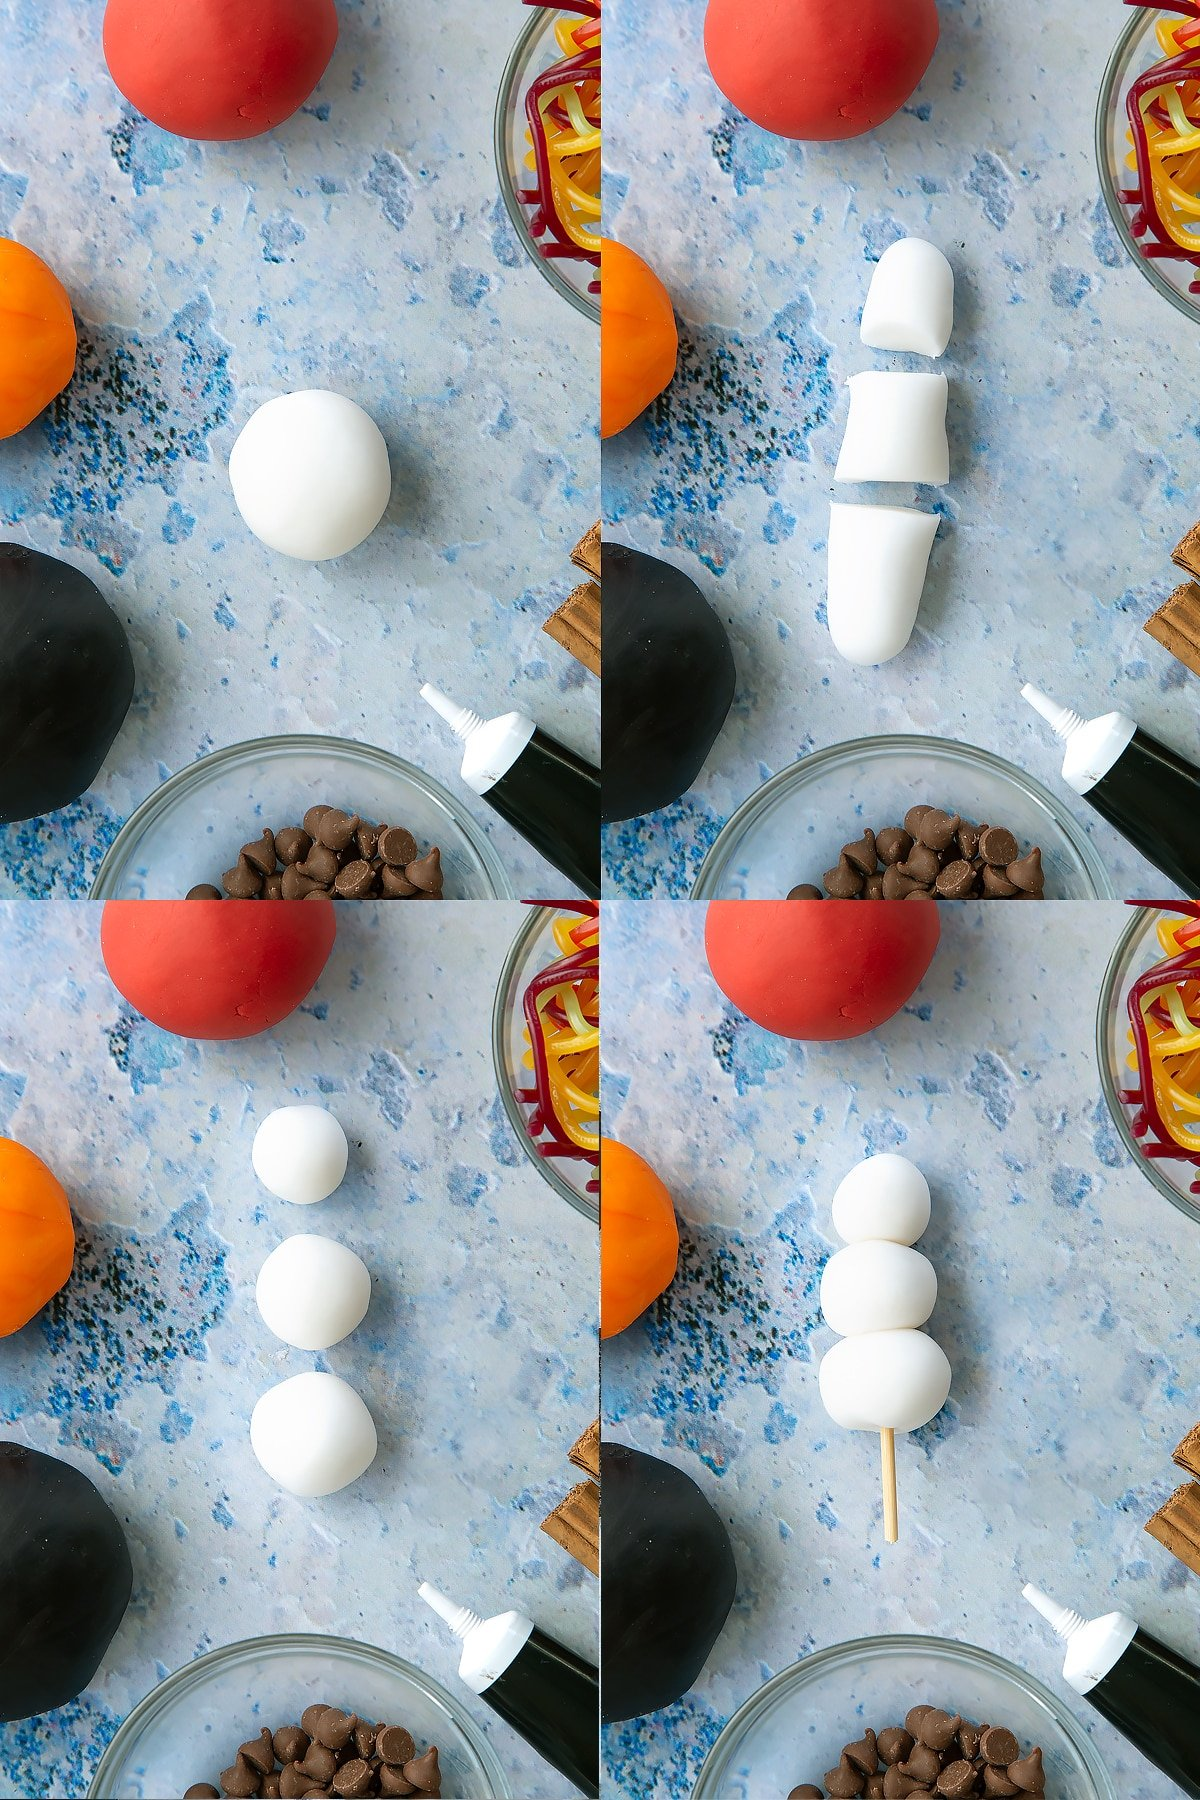 Four process images of making the snowmen for the snowman cupcakes.